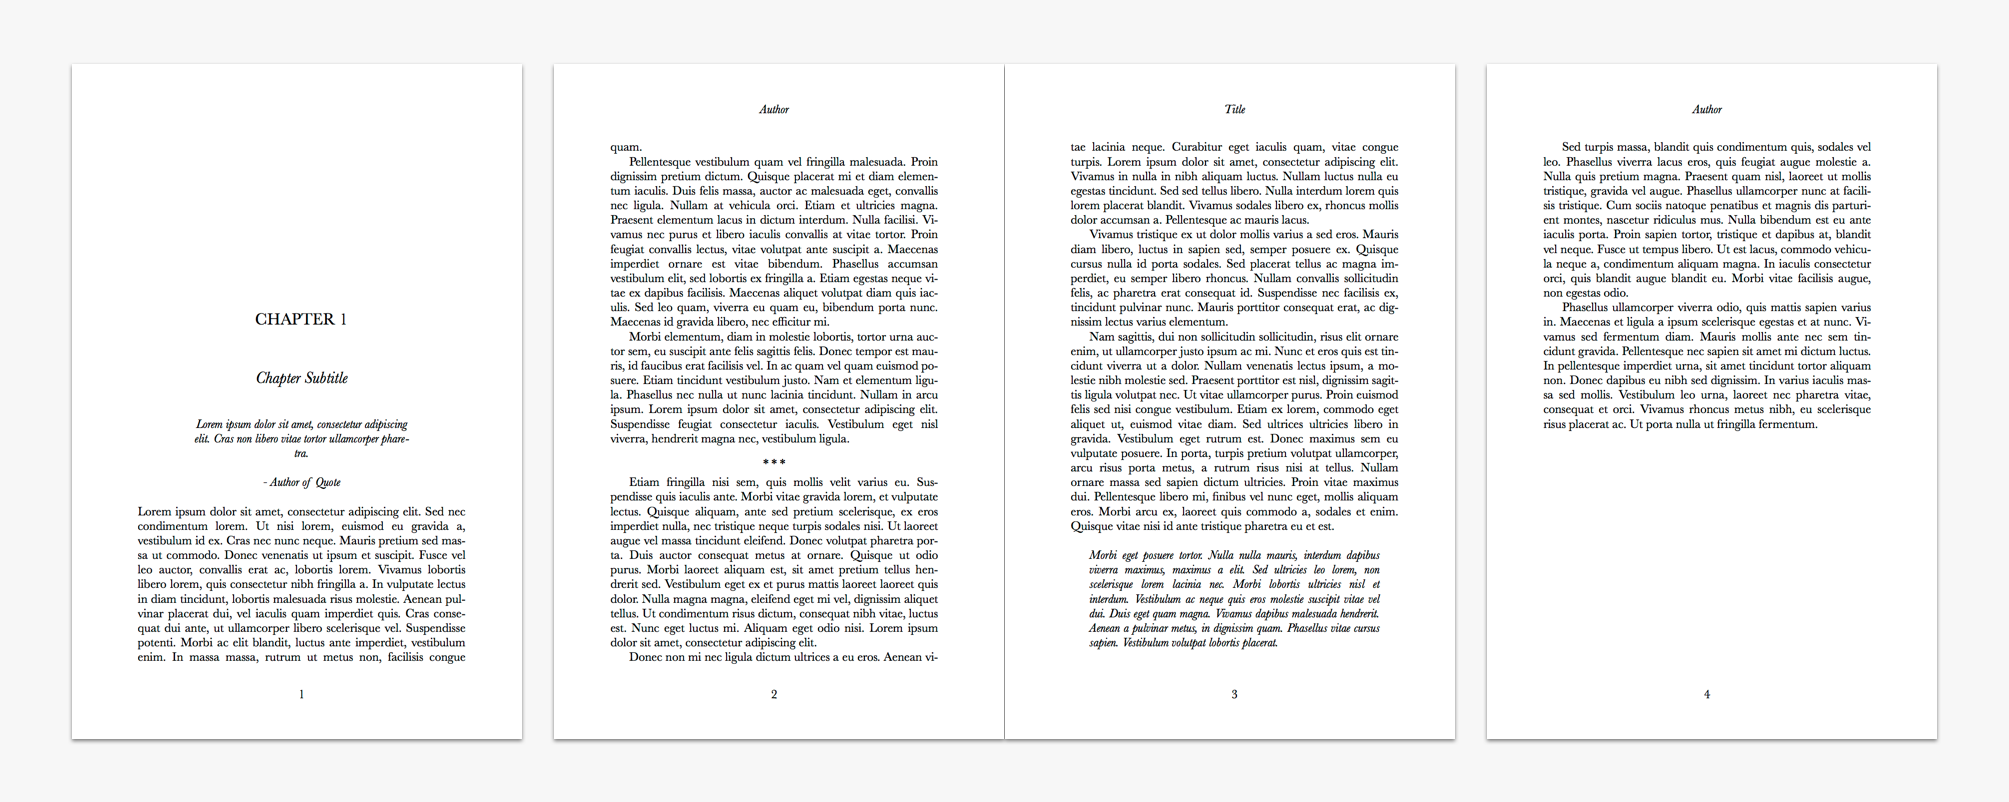 pride and prejudice notes on each chapter pdf